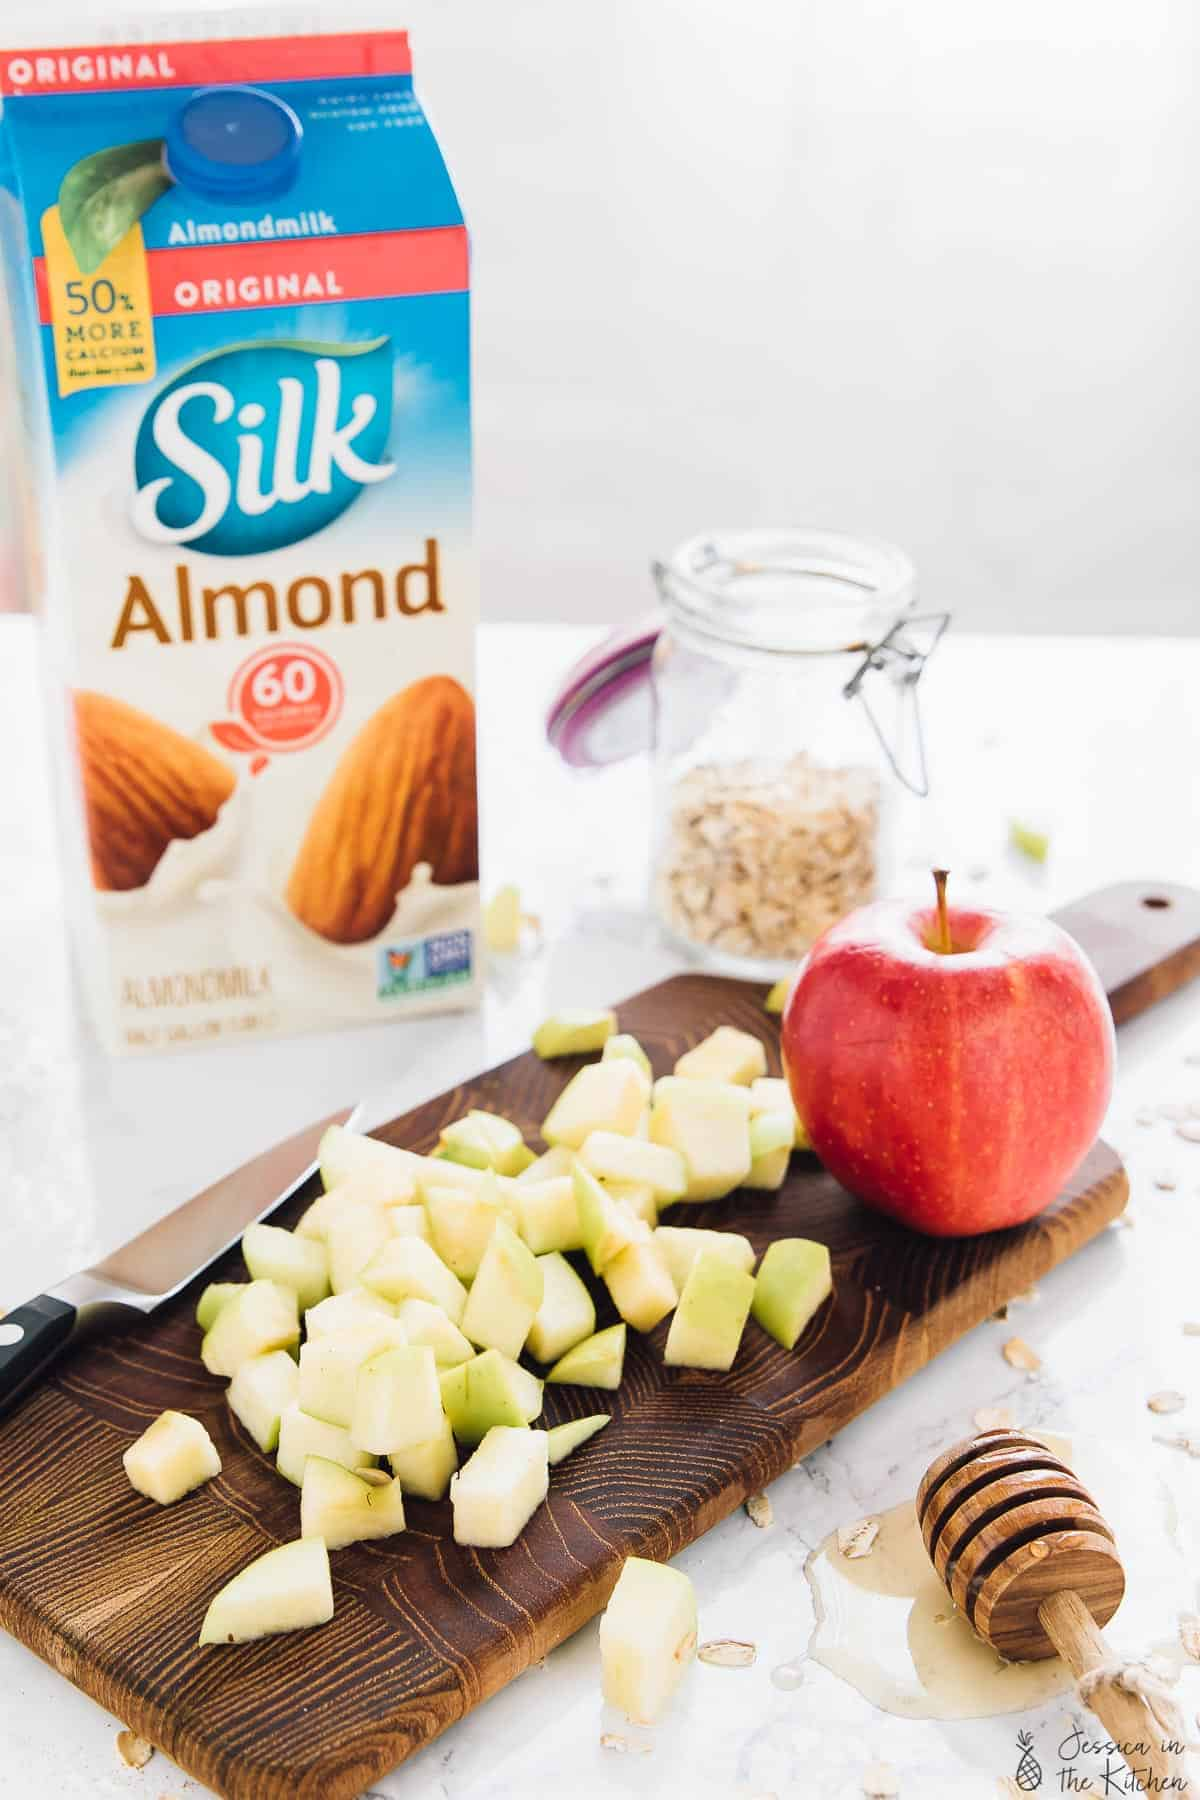 Diced apples on a wood board with a carton of almond milk in the background.